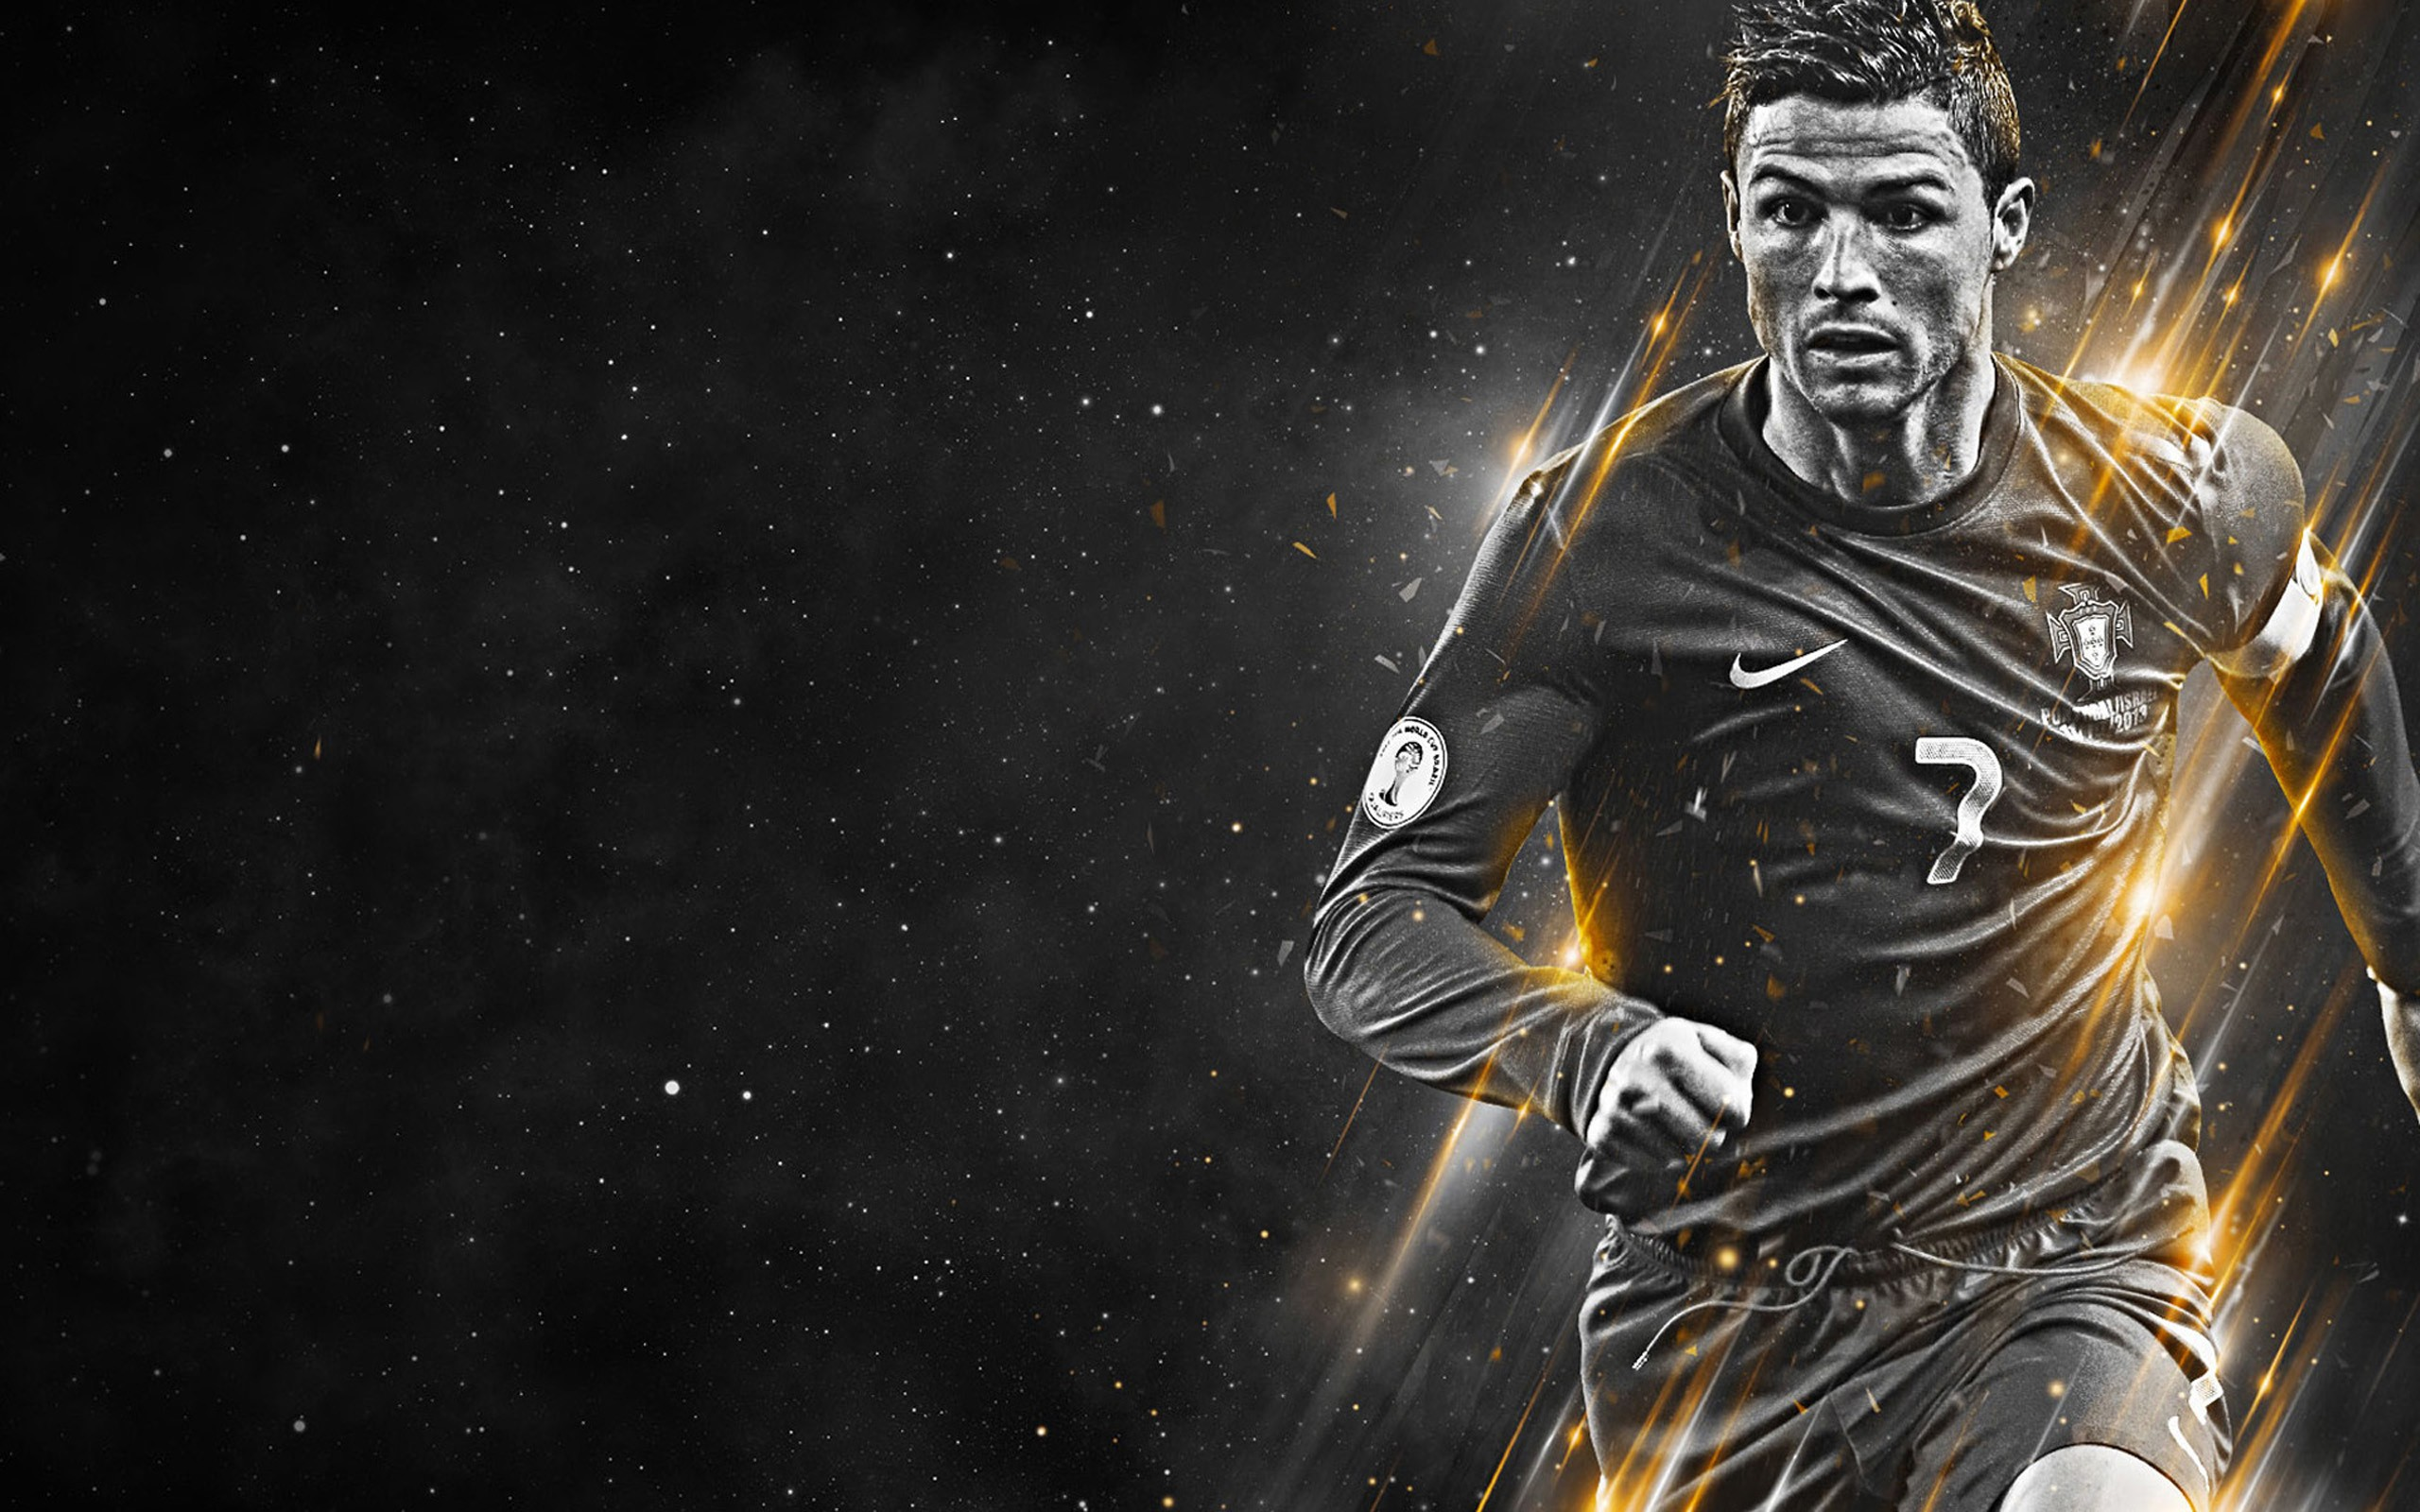 background - Cristiano Ronaldo: Top 10 aut